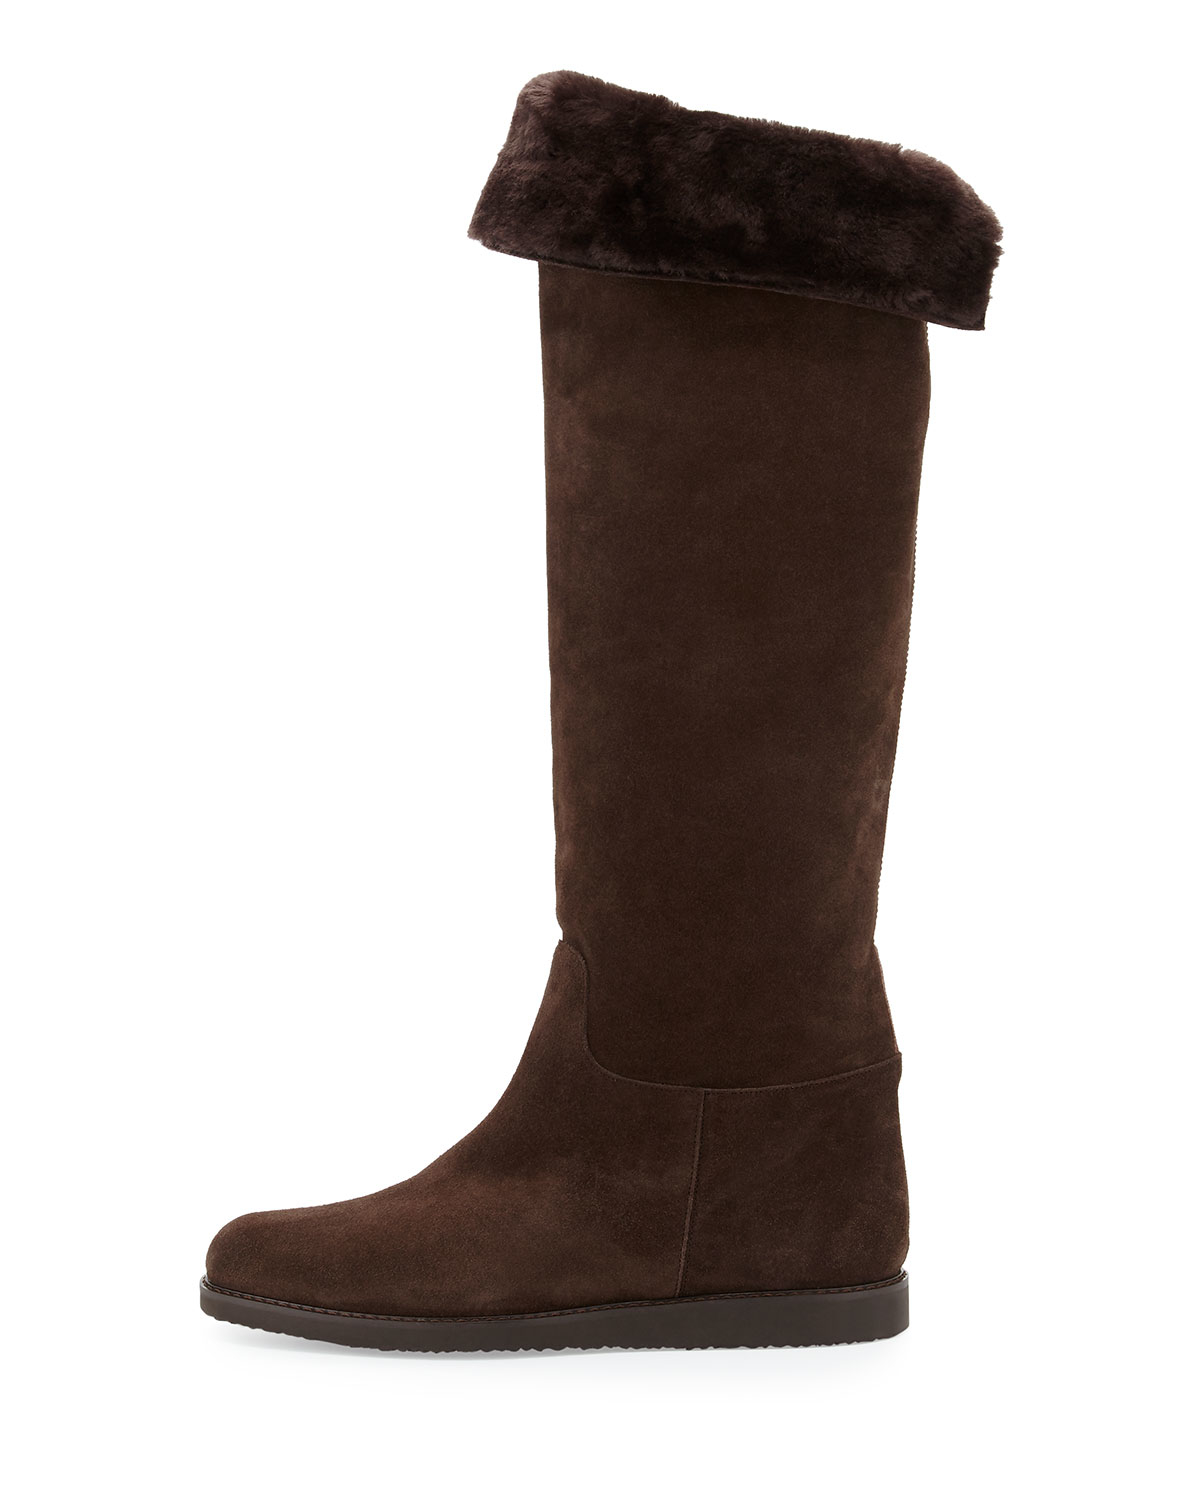 ferragamo my ease suede knee boot in brown lyst